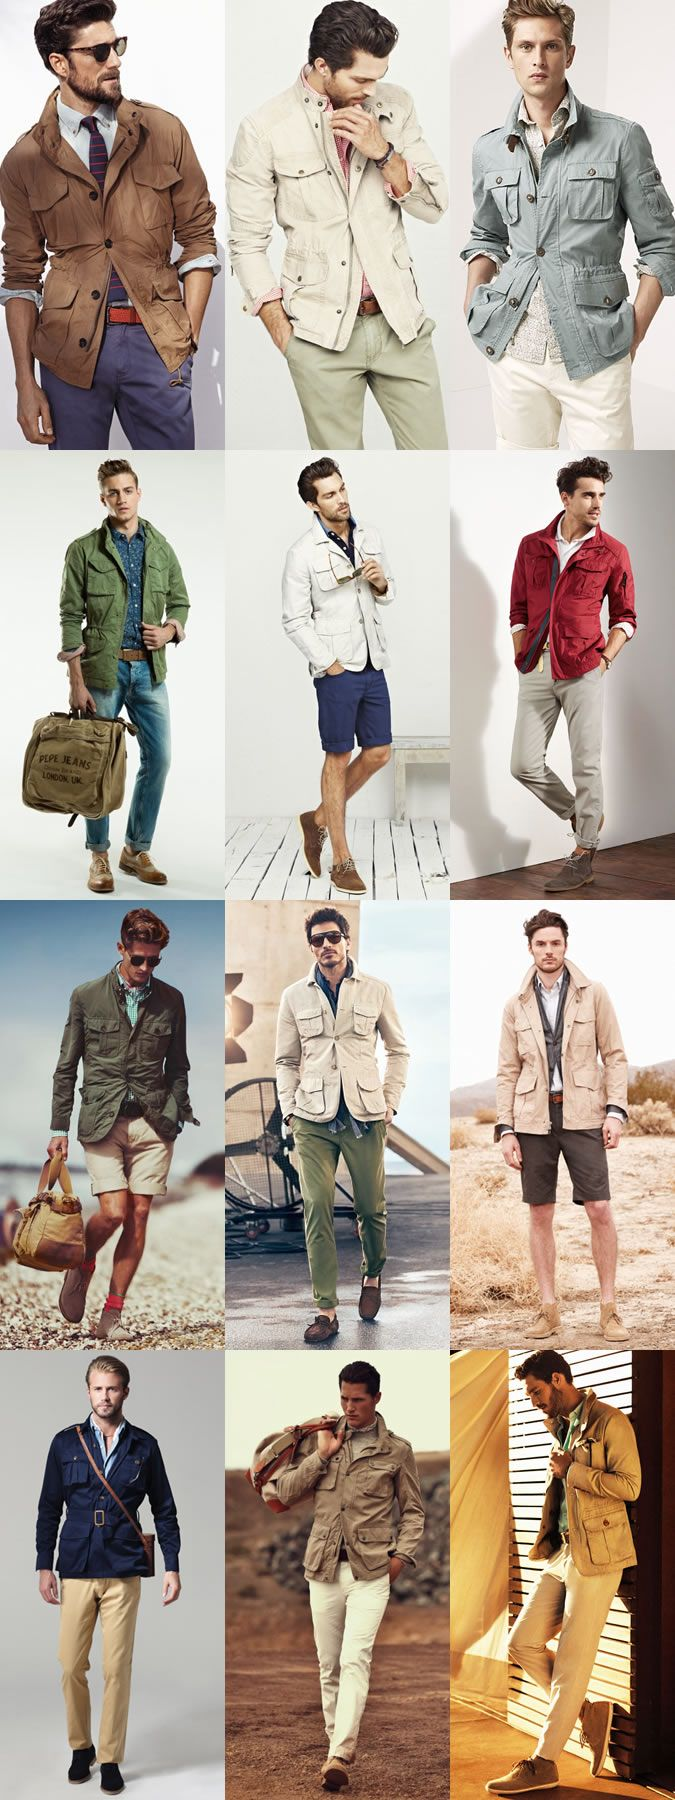 Men's Key Spring Jackets And How To Wear Them: The Safari Jacket Lookbook Inspiration